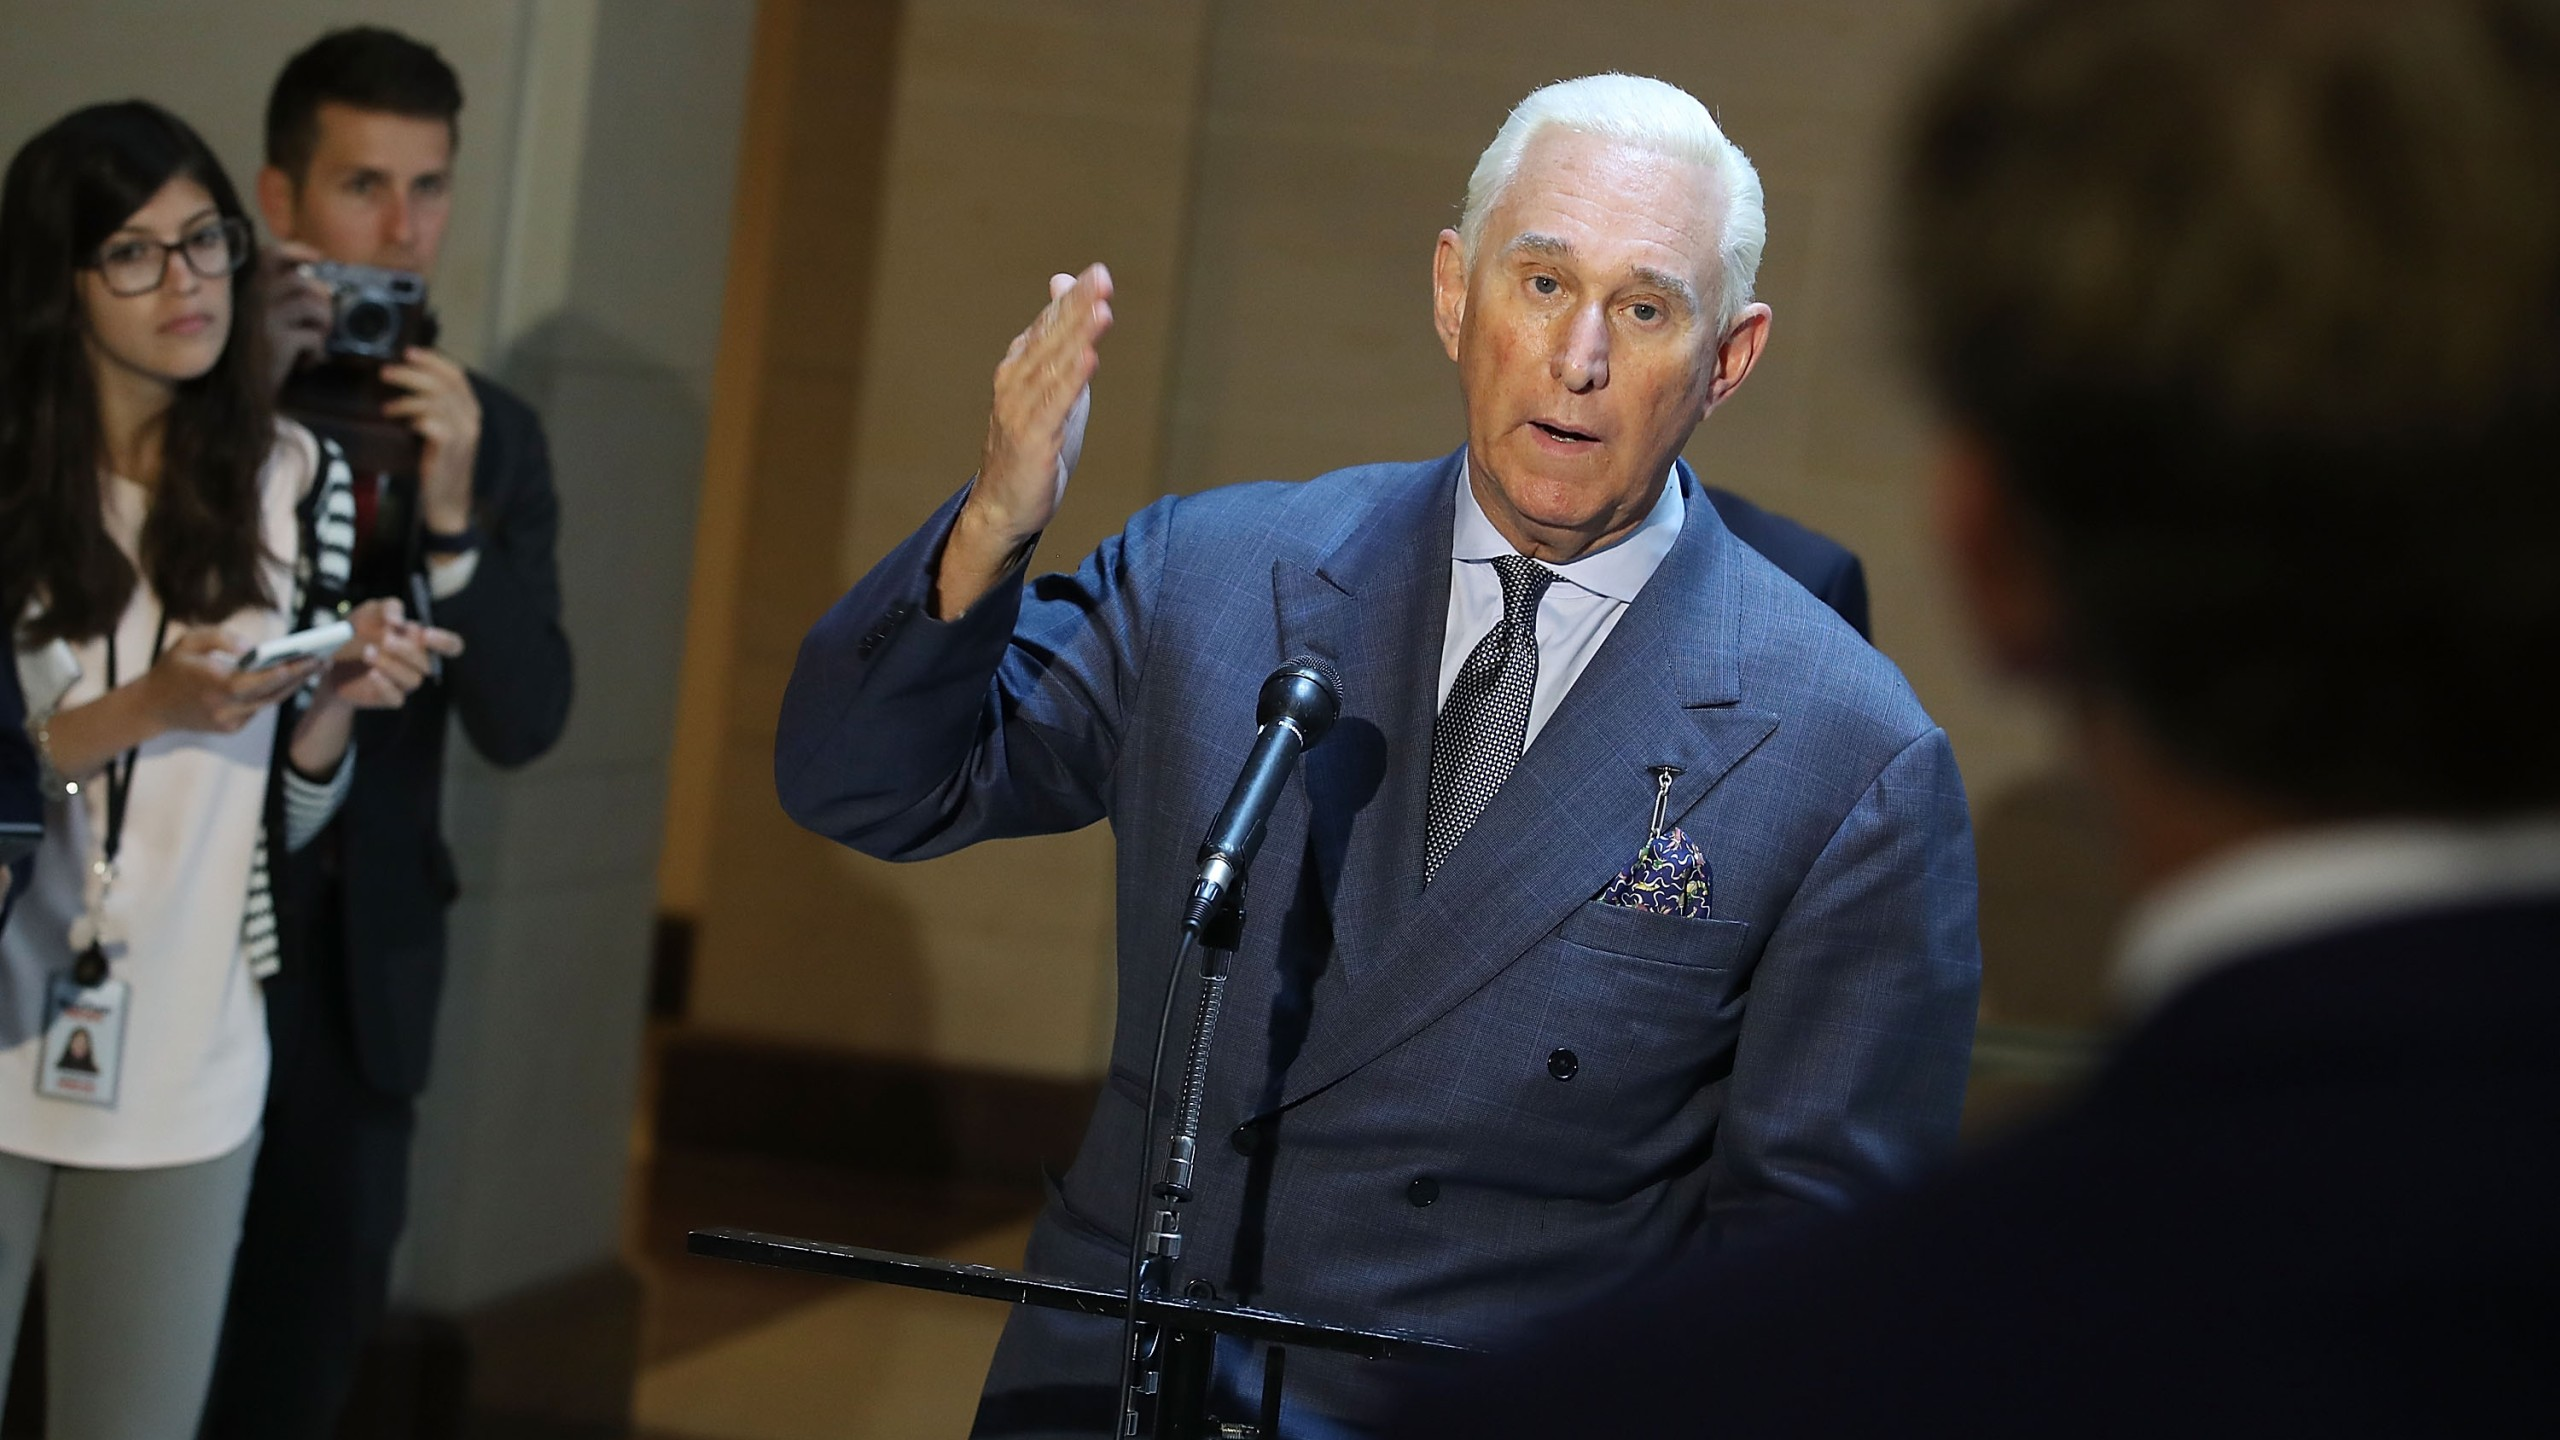 Roger Stone, former confidant to President Donald Trump speaks to the media on September 26, 2017, in Washington, D.C. (Credit: Mark Wilson/Getty Images)